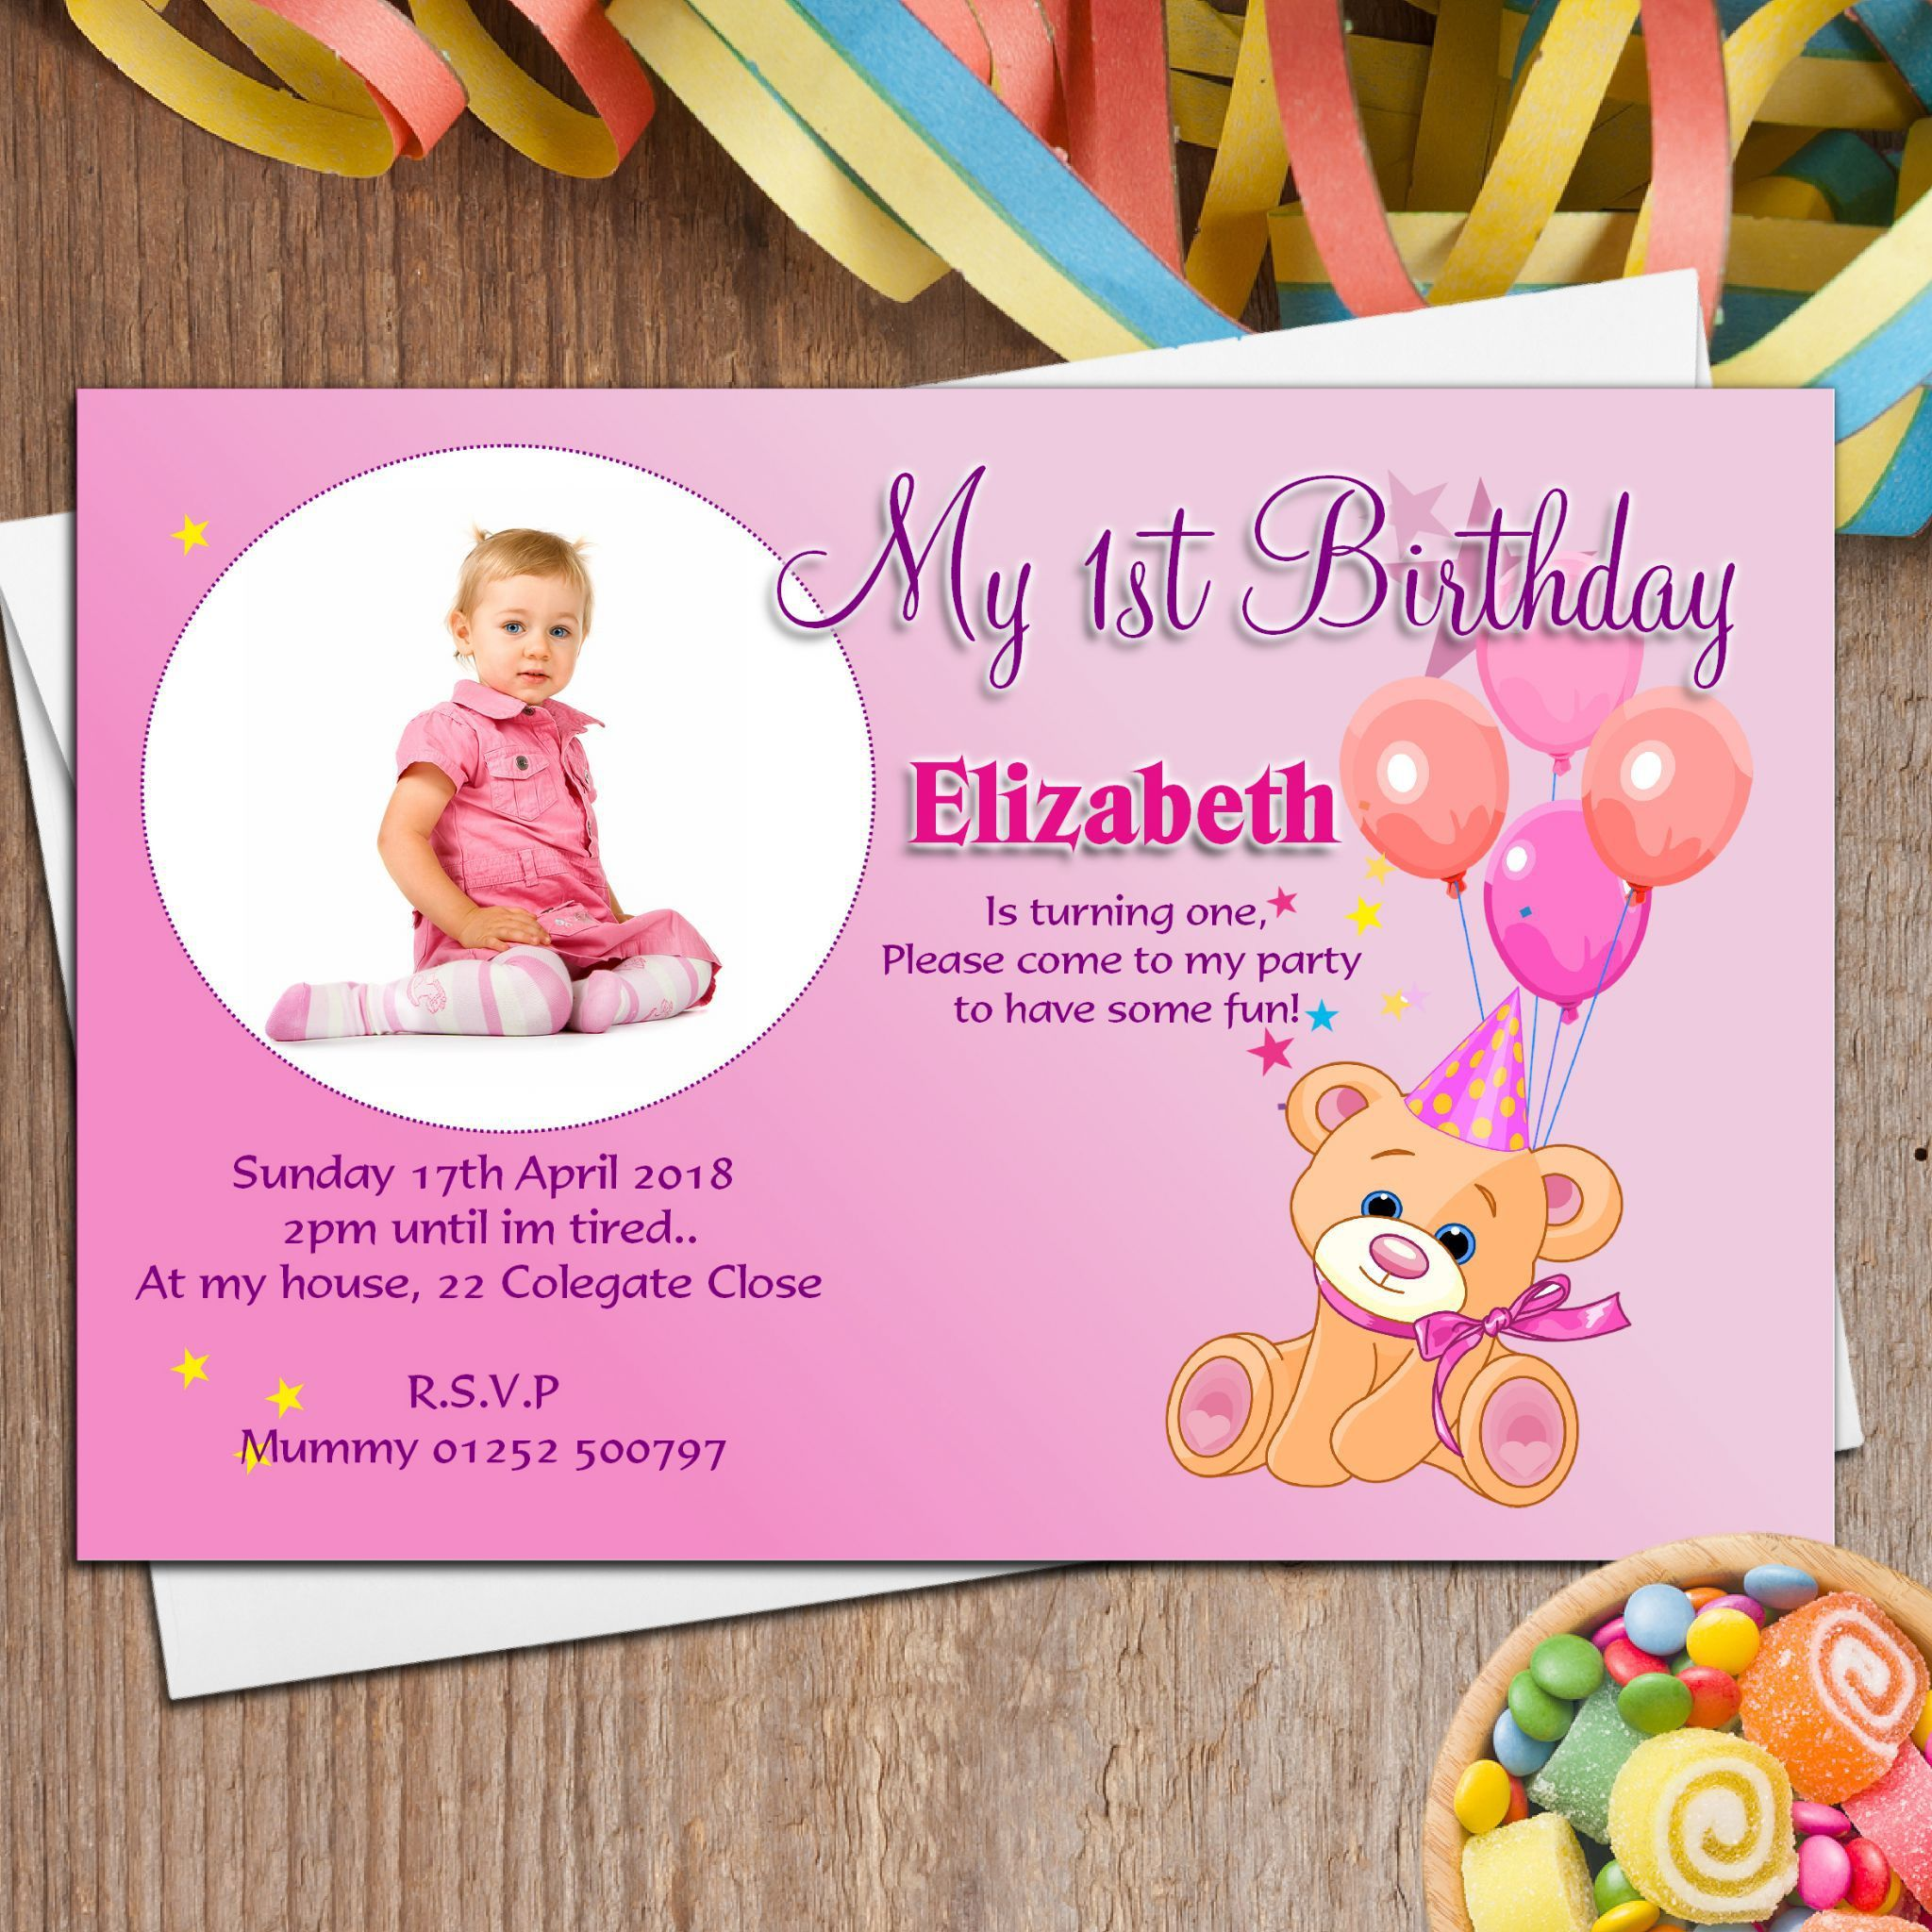 Geburtstag Whatsapp Gruppe Birthday Invitation Card Online Rainbow Invitations Personalized